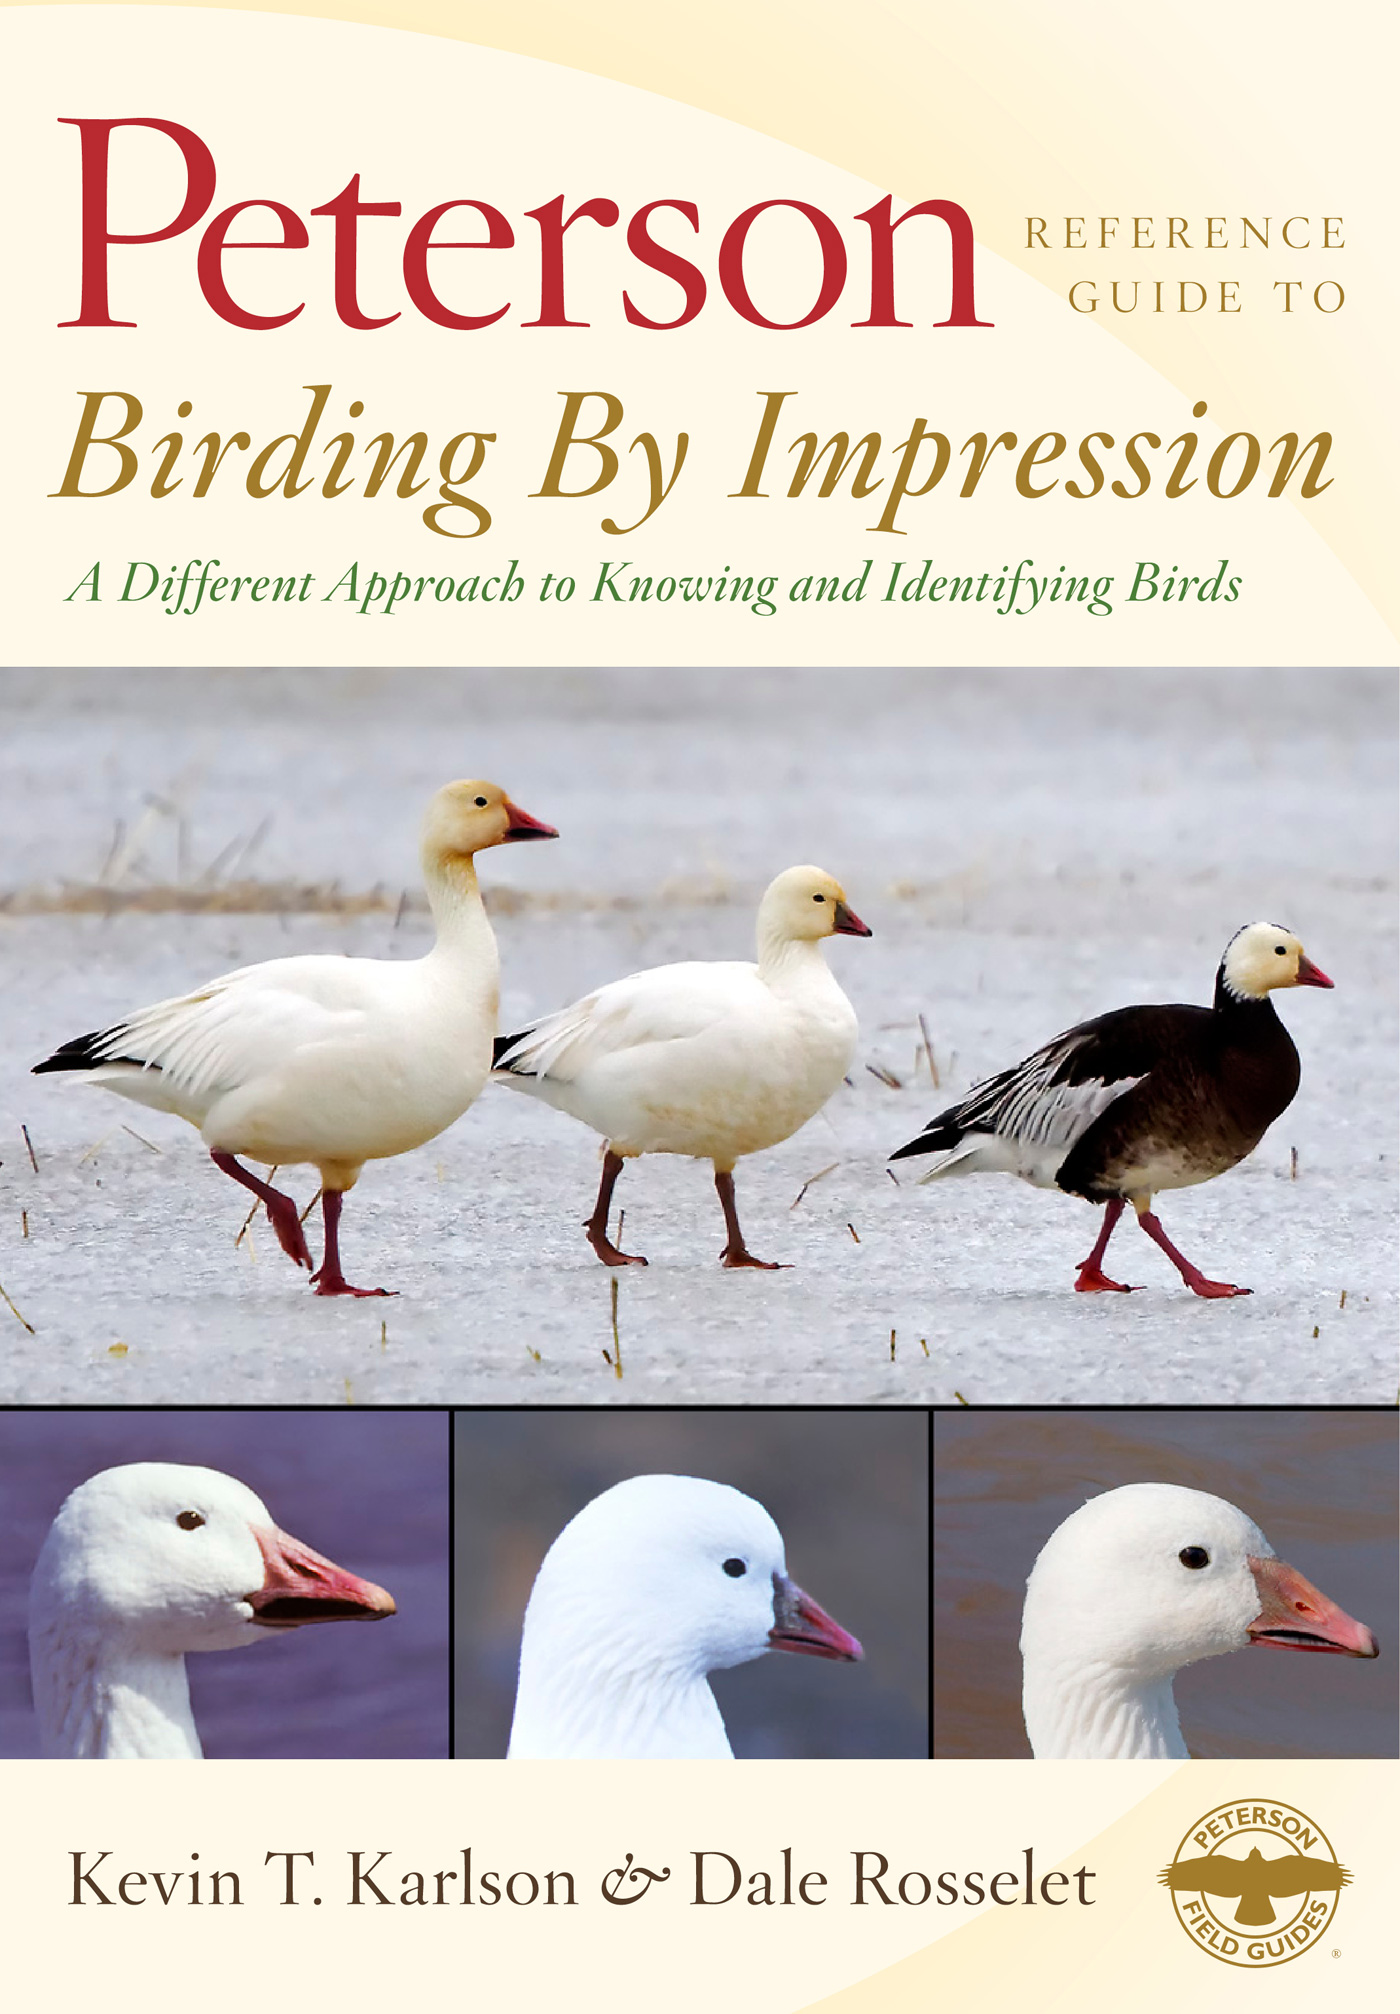 Peterson Reference Guide to Birding by Impression-9780547195780